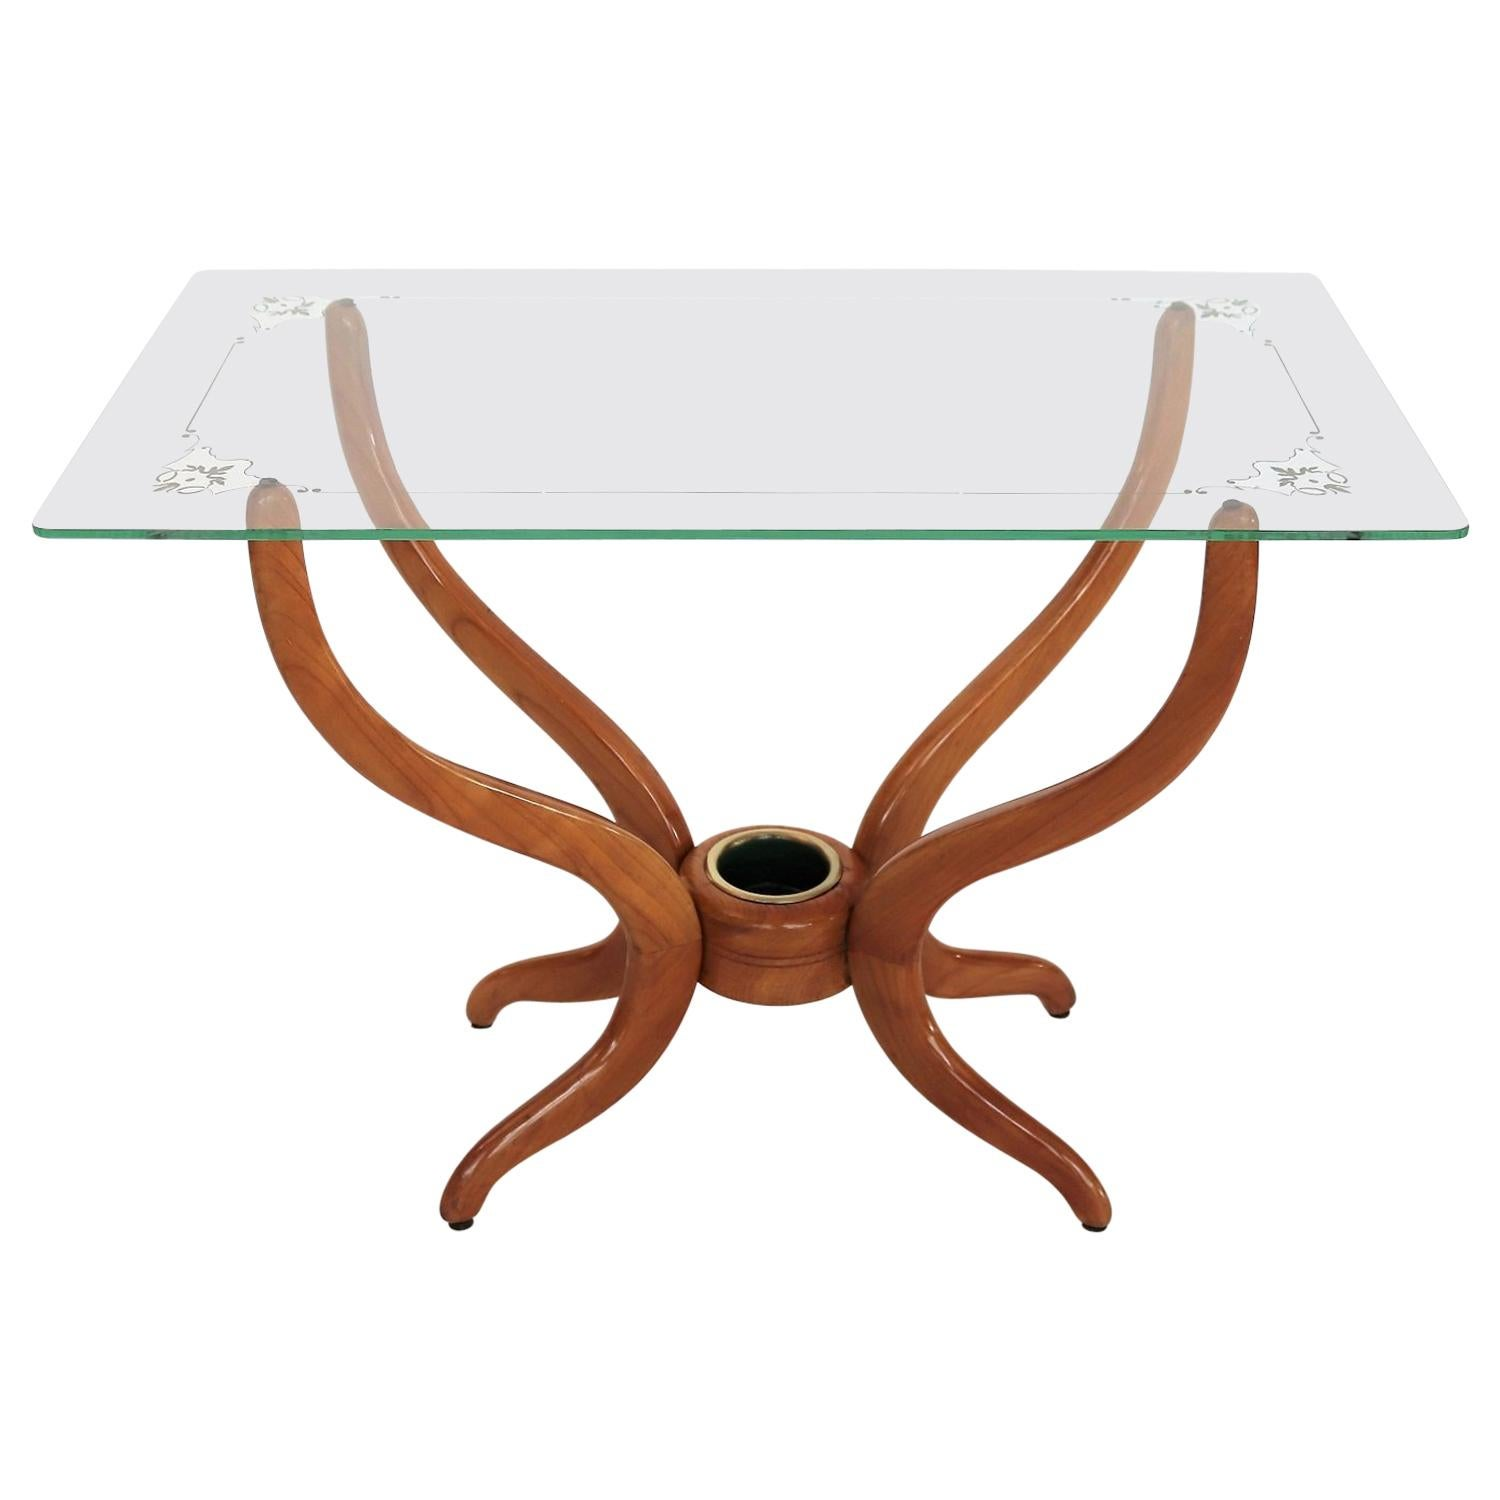 Italian Midcentury Coffee Table in Walnut and Glass, 1950s